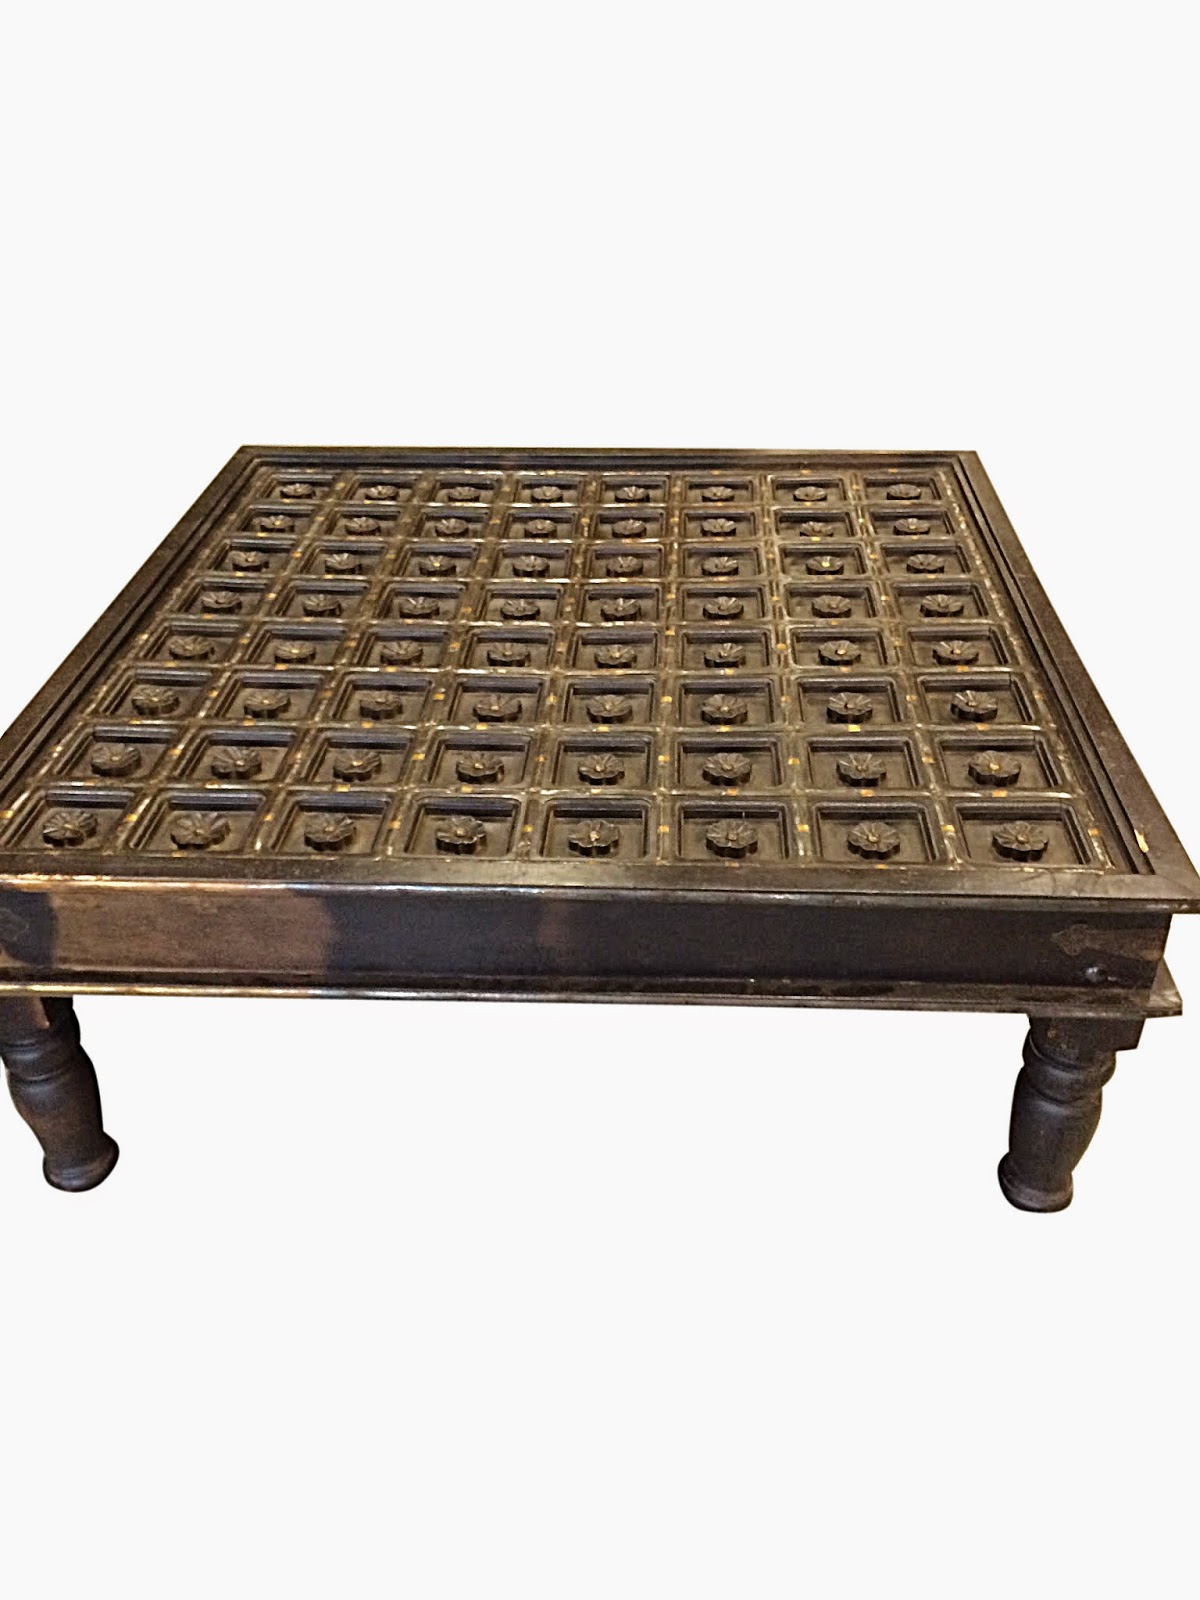 Mogul Interior Designs Antique Coffee Table interiorlove